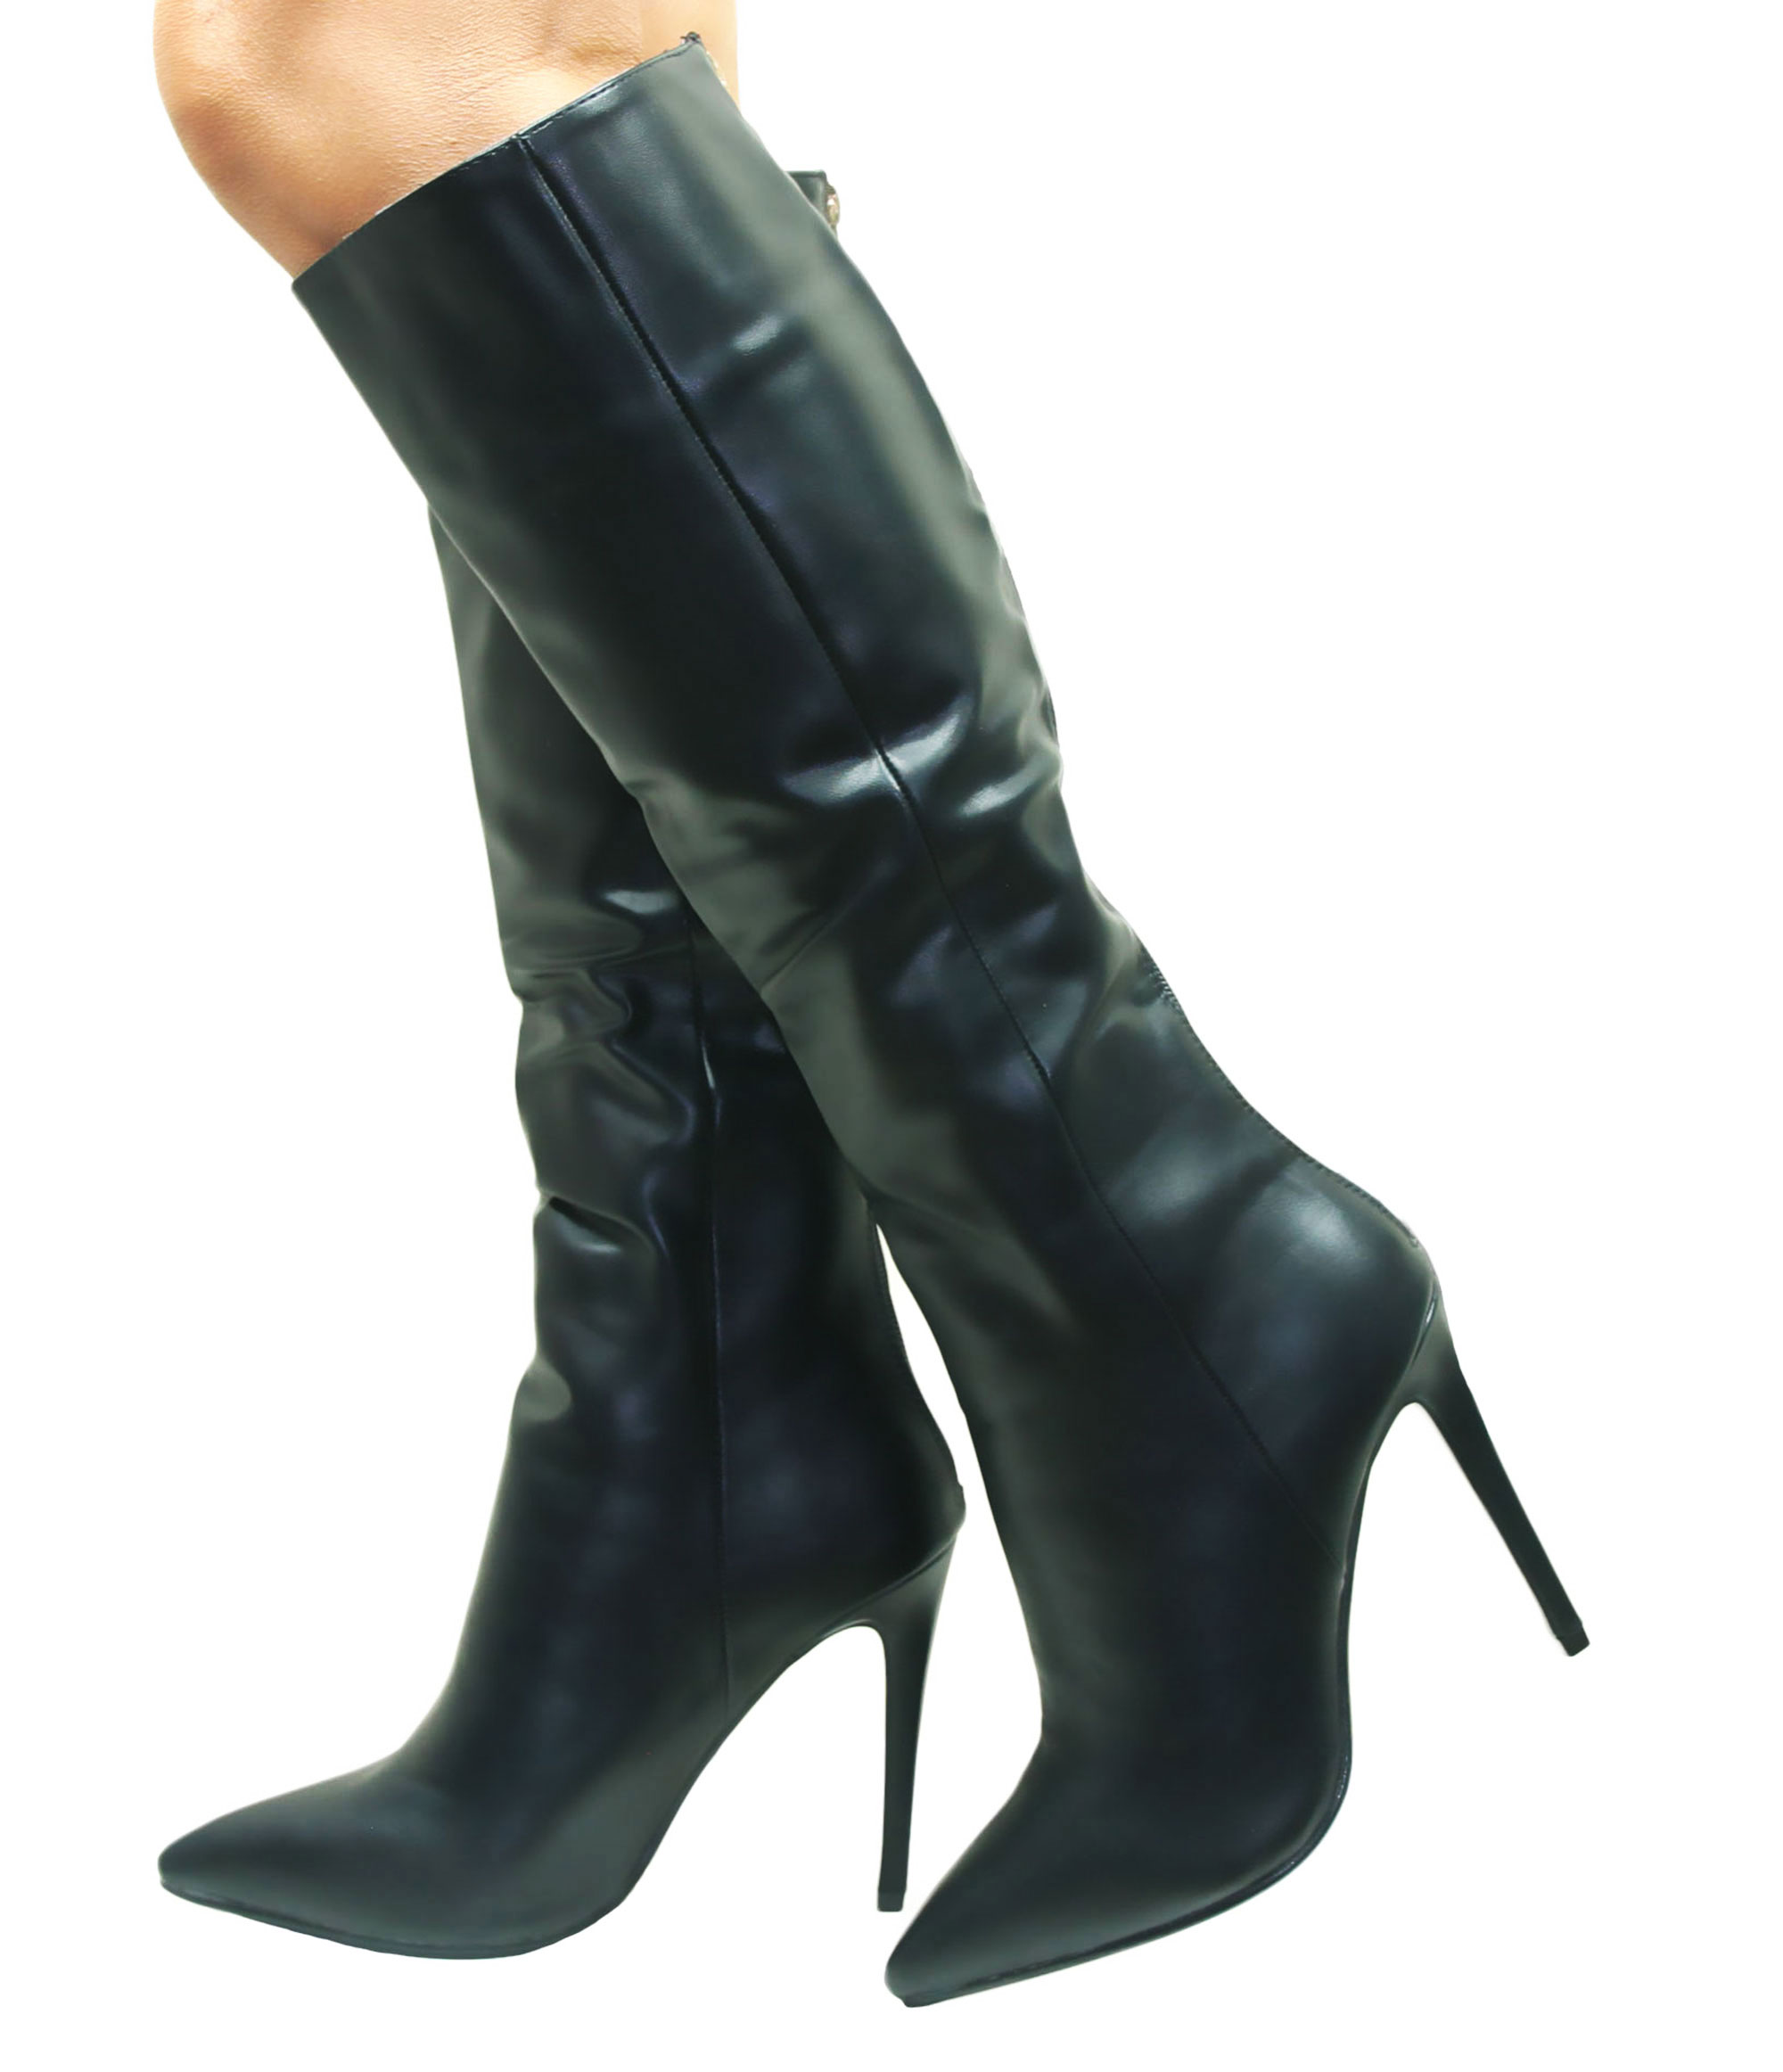 WOMENS VAMP WINTER PLATFORM STILETTO KNEE HIGH HEEL LONG